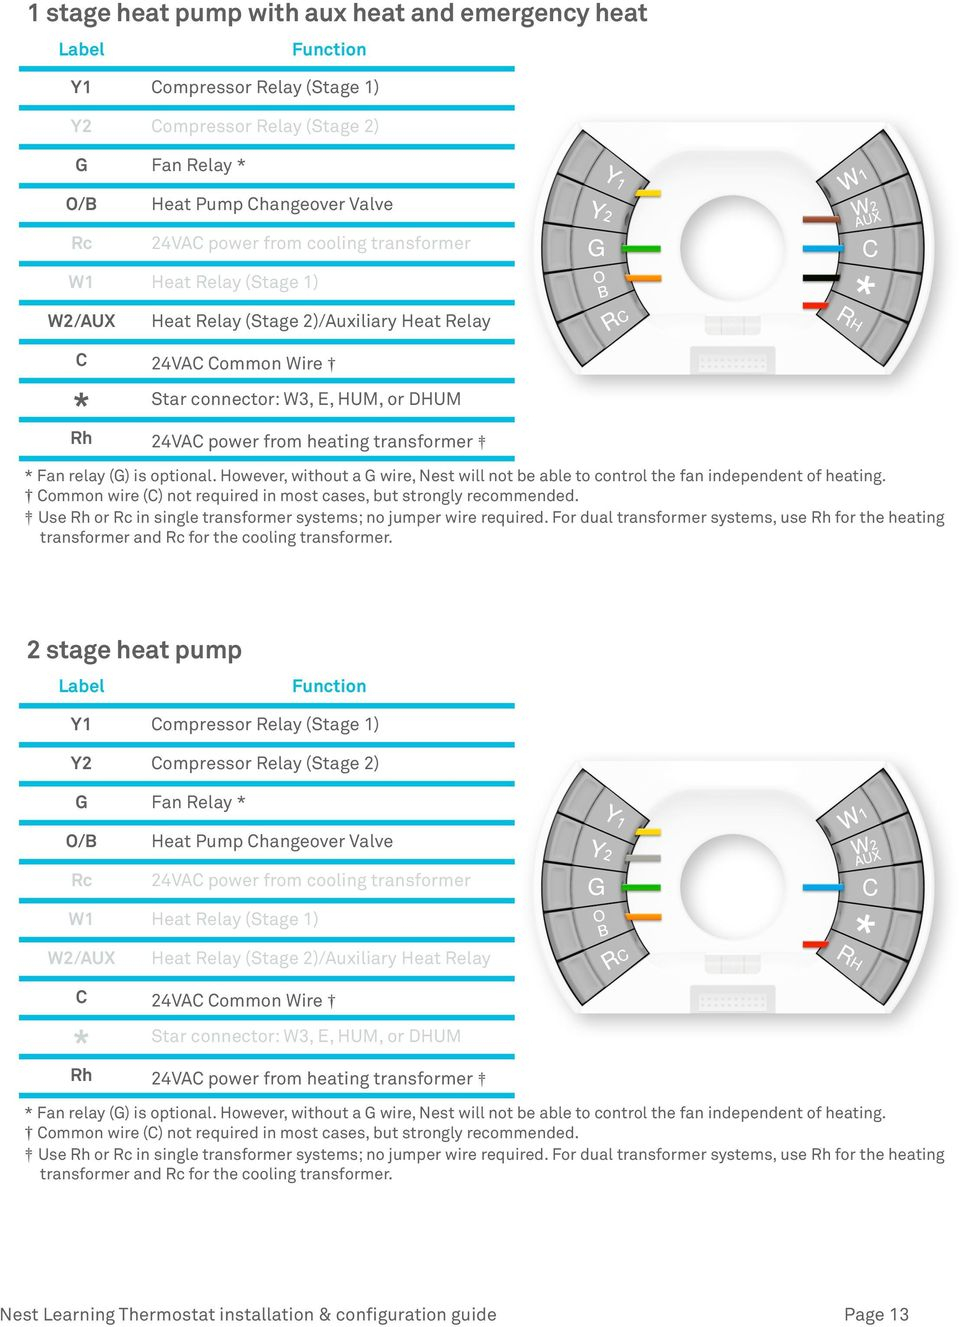 Nest Thermostat Wiring Diagram Heat Pump | Wiring Diagram - Nest Learning Thermostat Wiring Diagram